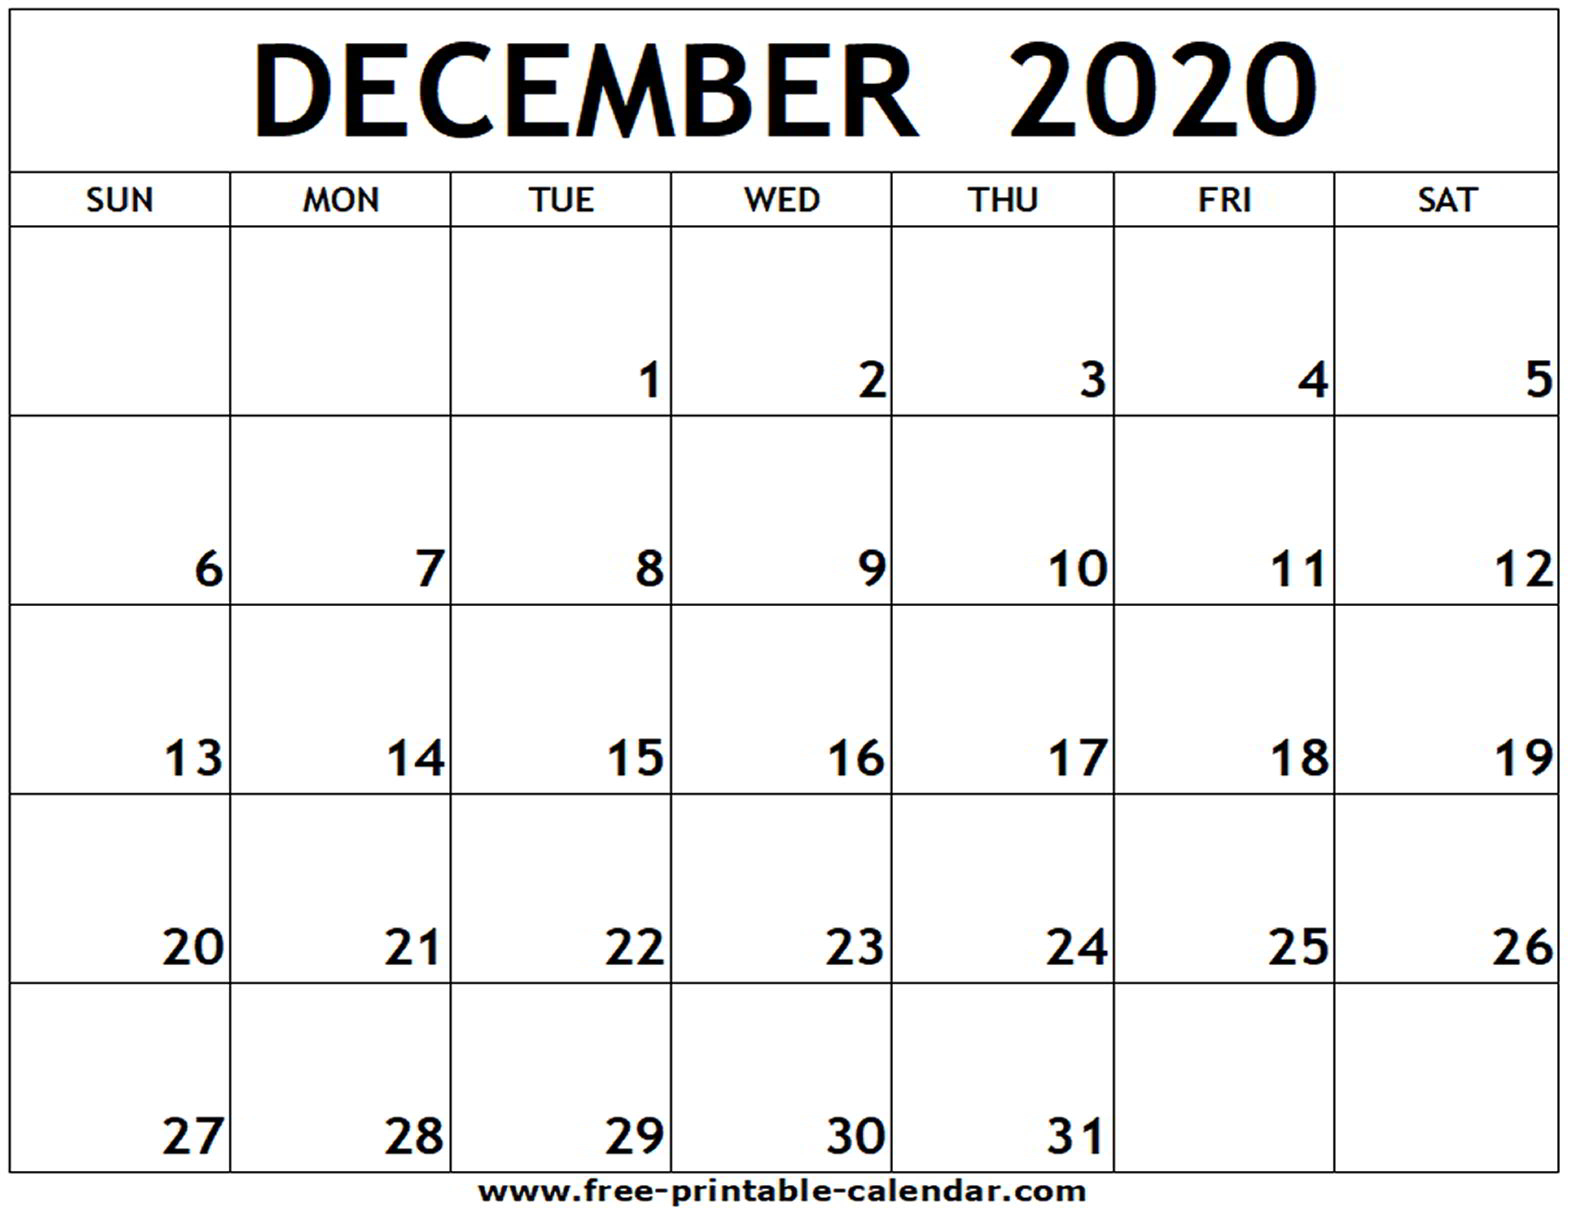 Blank Calendar For December 2020 - Wpa.wpart.co throughout October To December 2020 Calendar